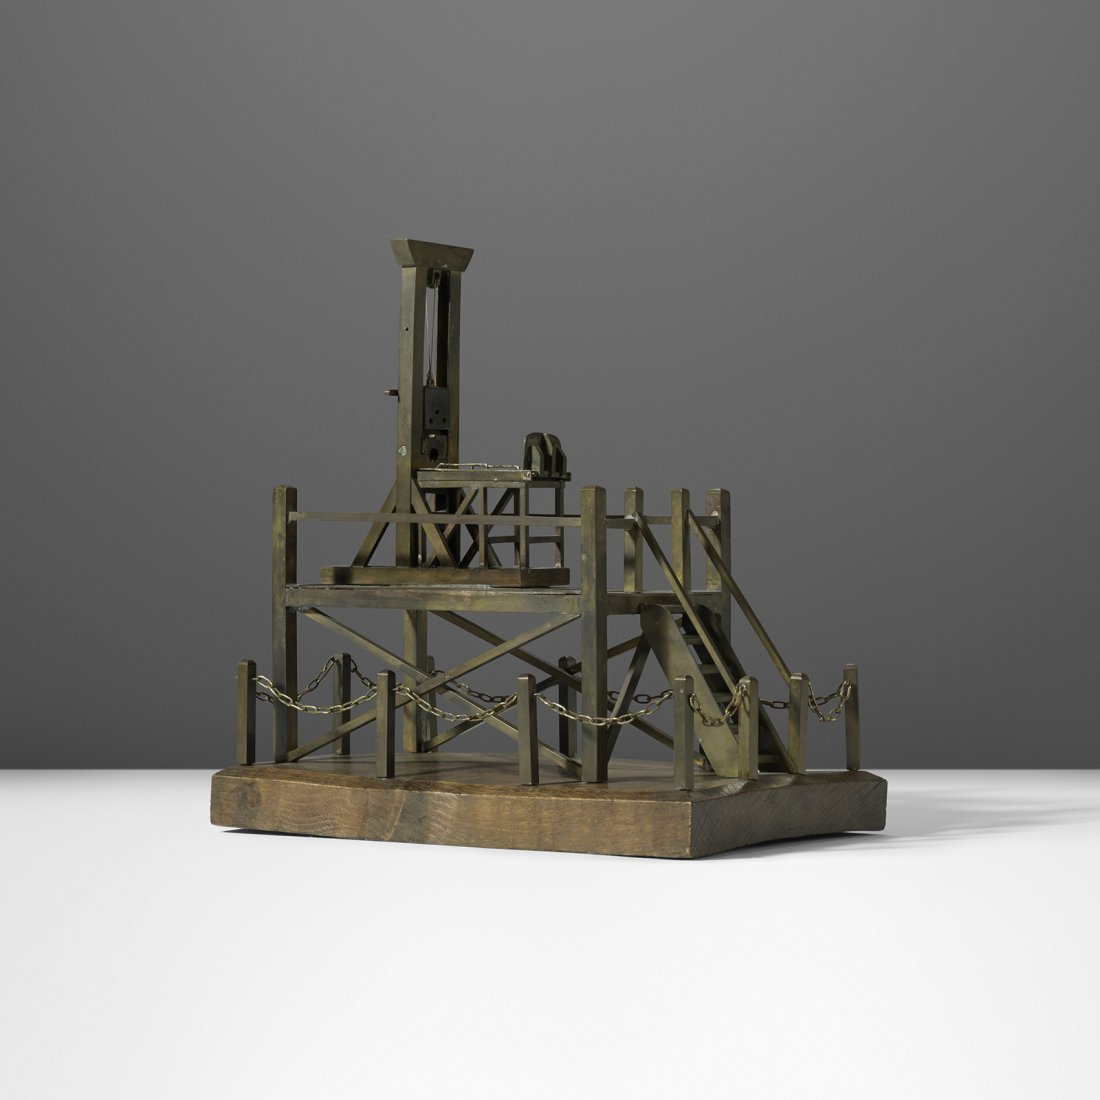 French guillotine model